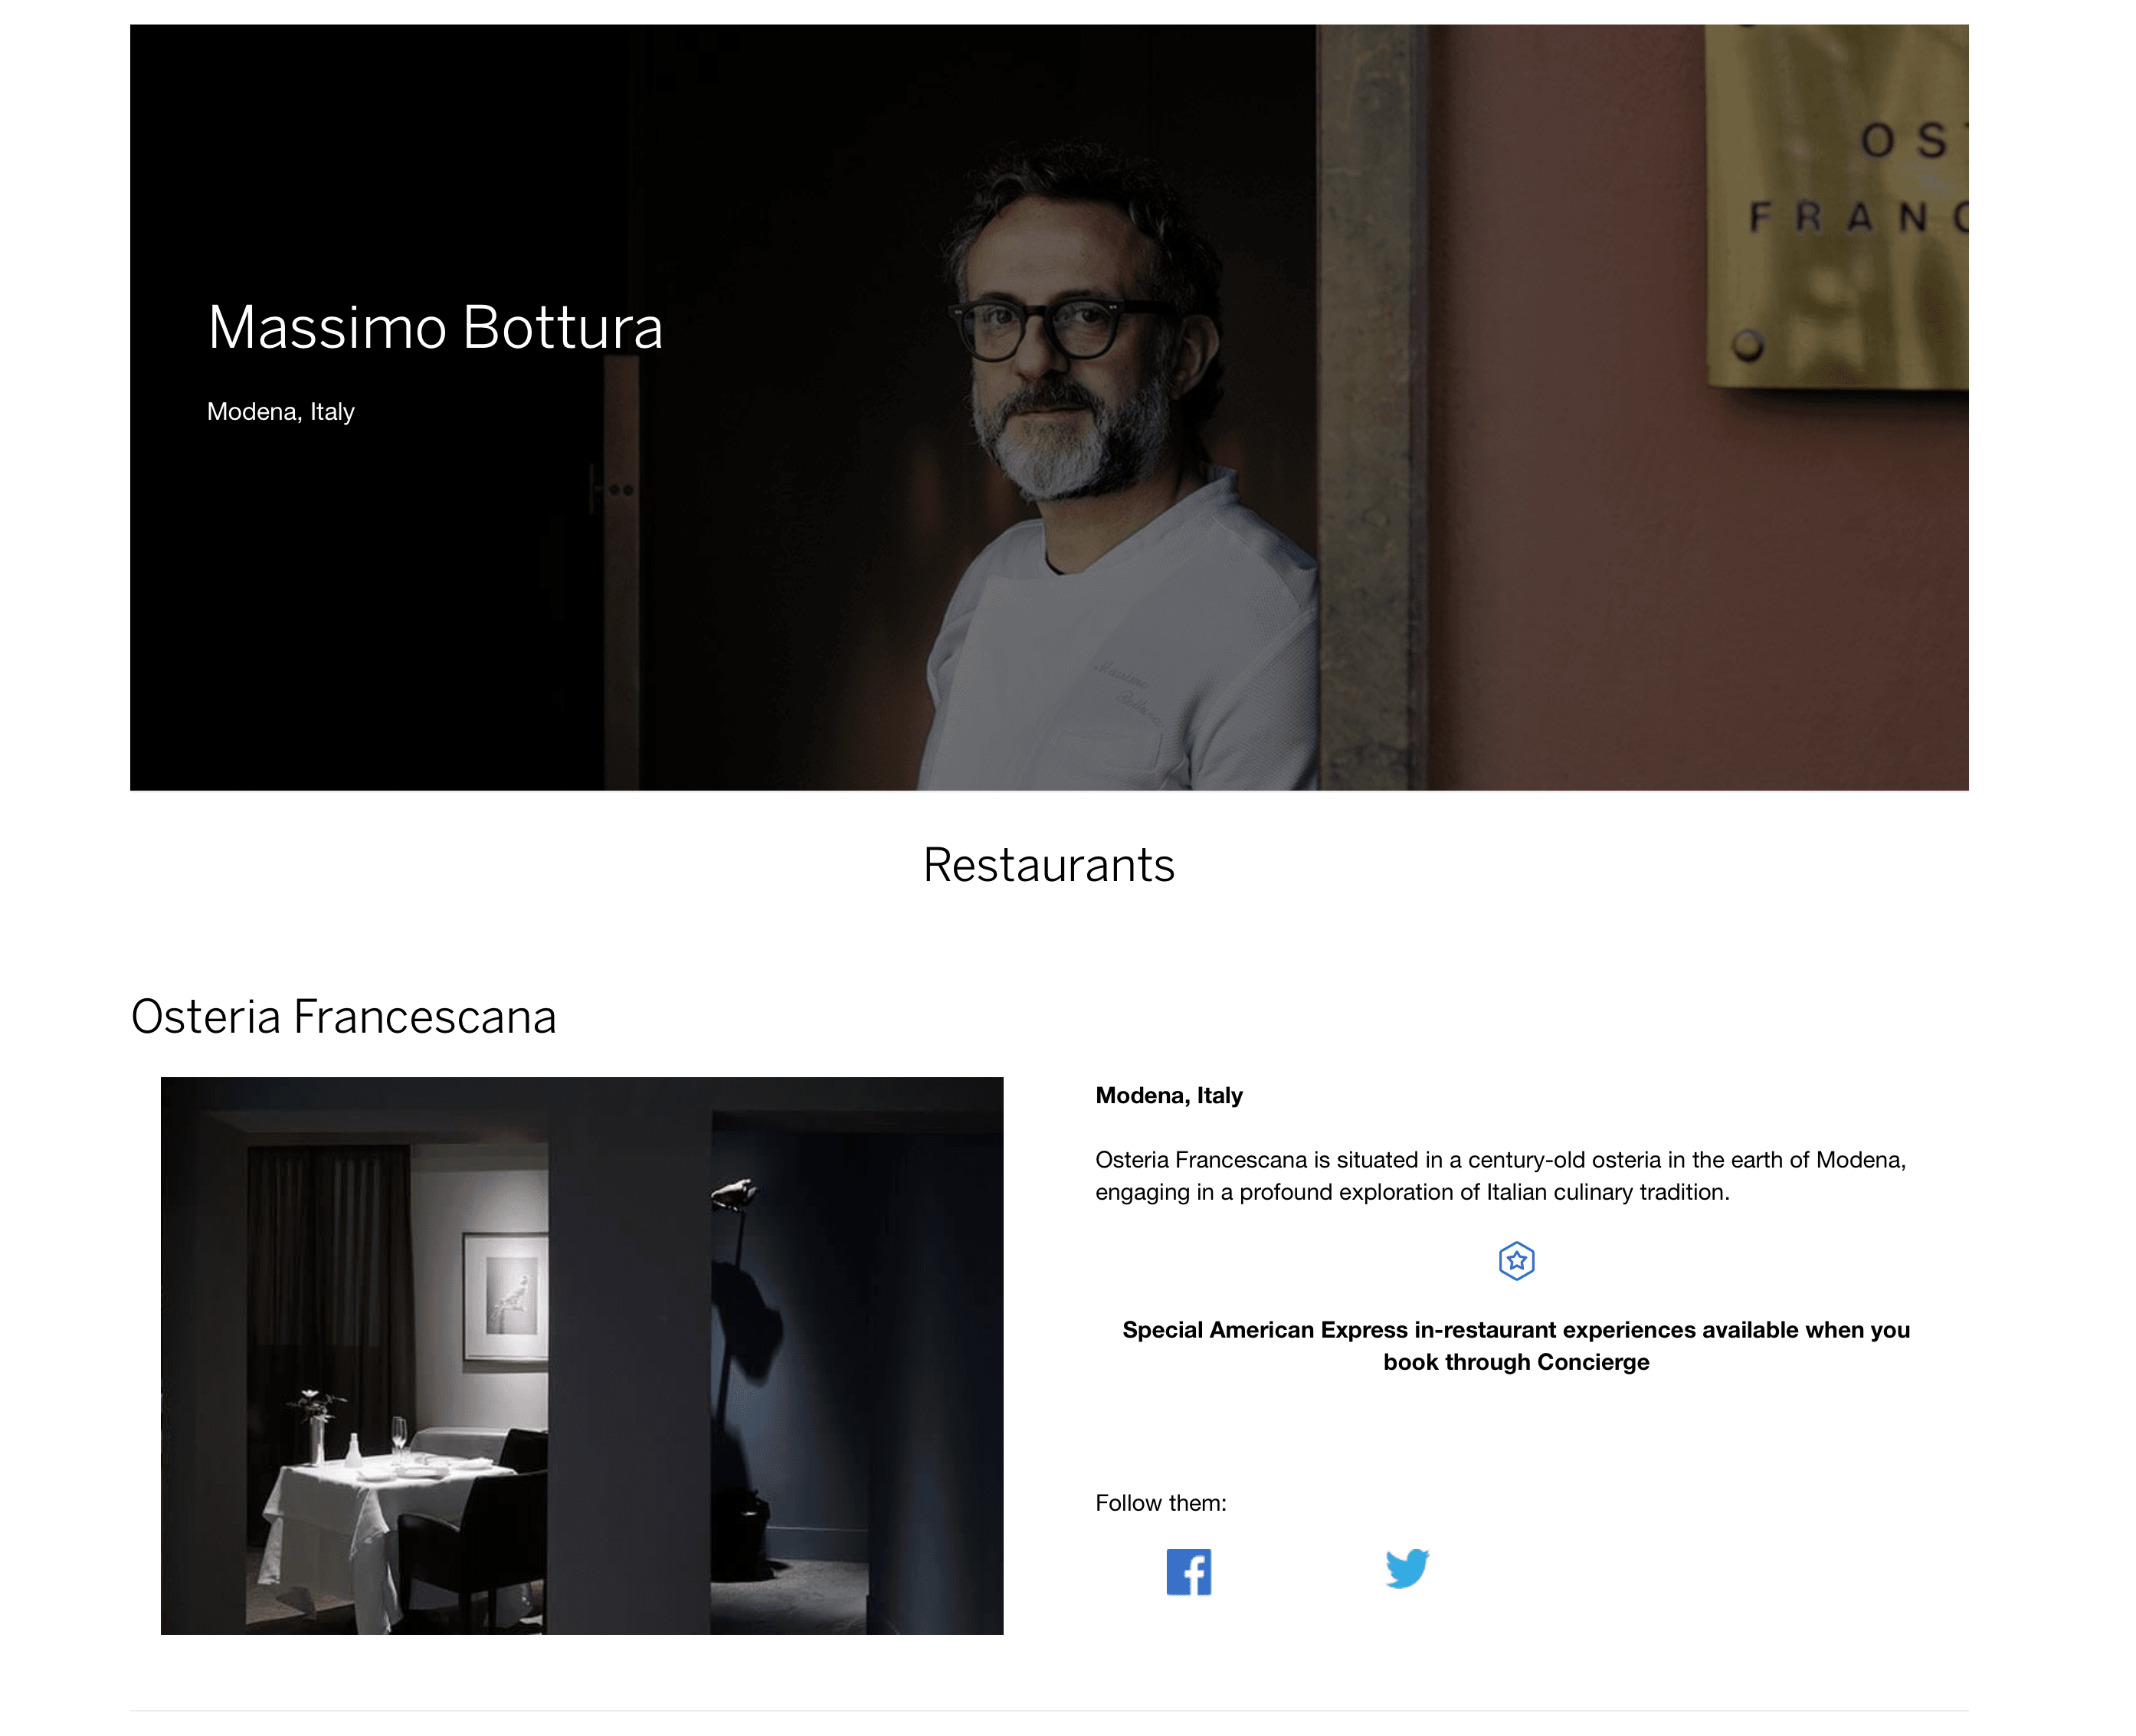 Screenshot of American Express Global Dining page, featuring Italian chef Massimo Bottura.